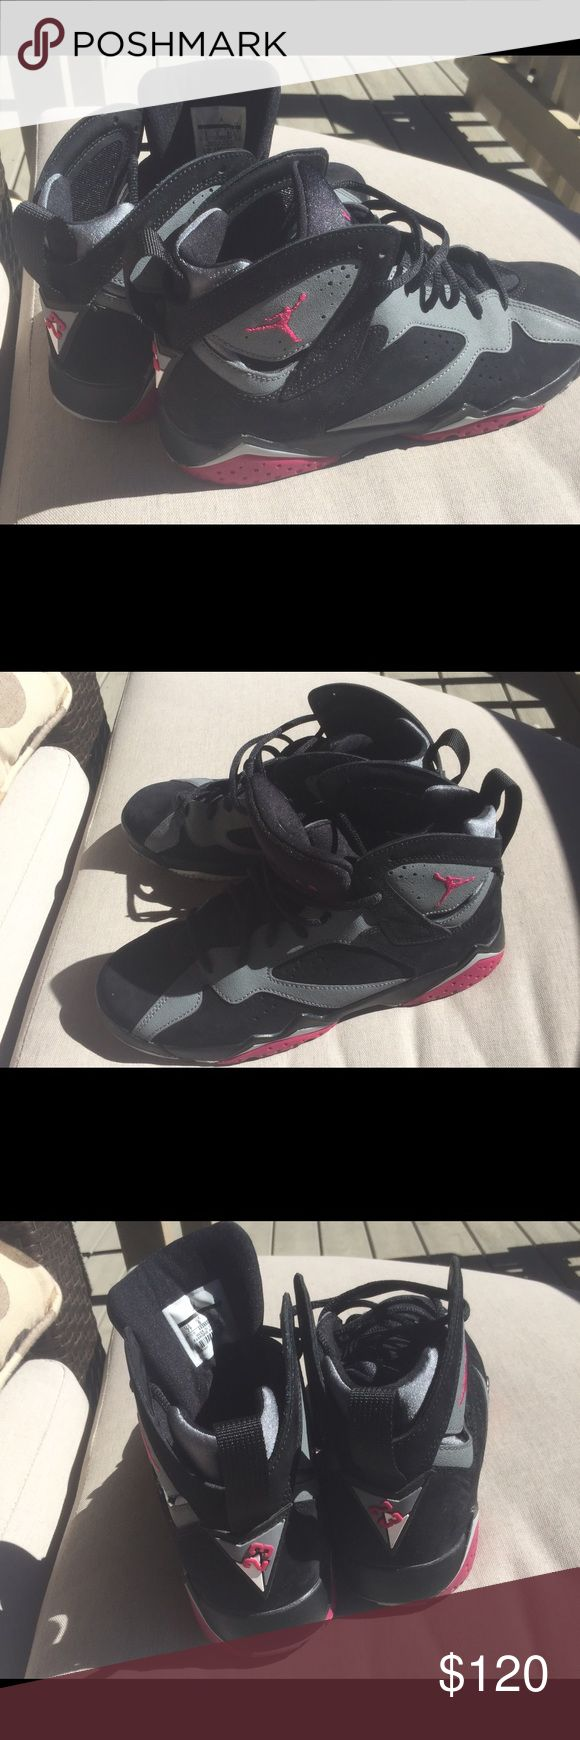 Retro Jordan 7s pink and grey Jordan Only wore once in excellent condition . Jordan Shoes